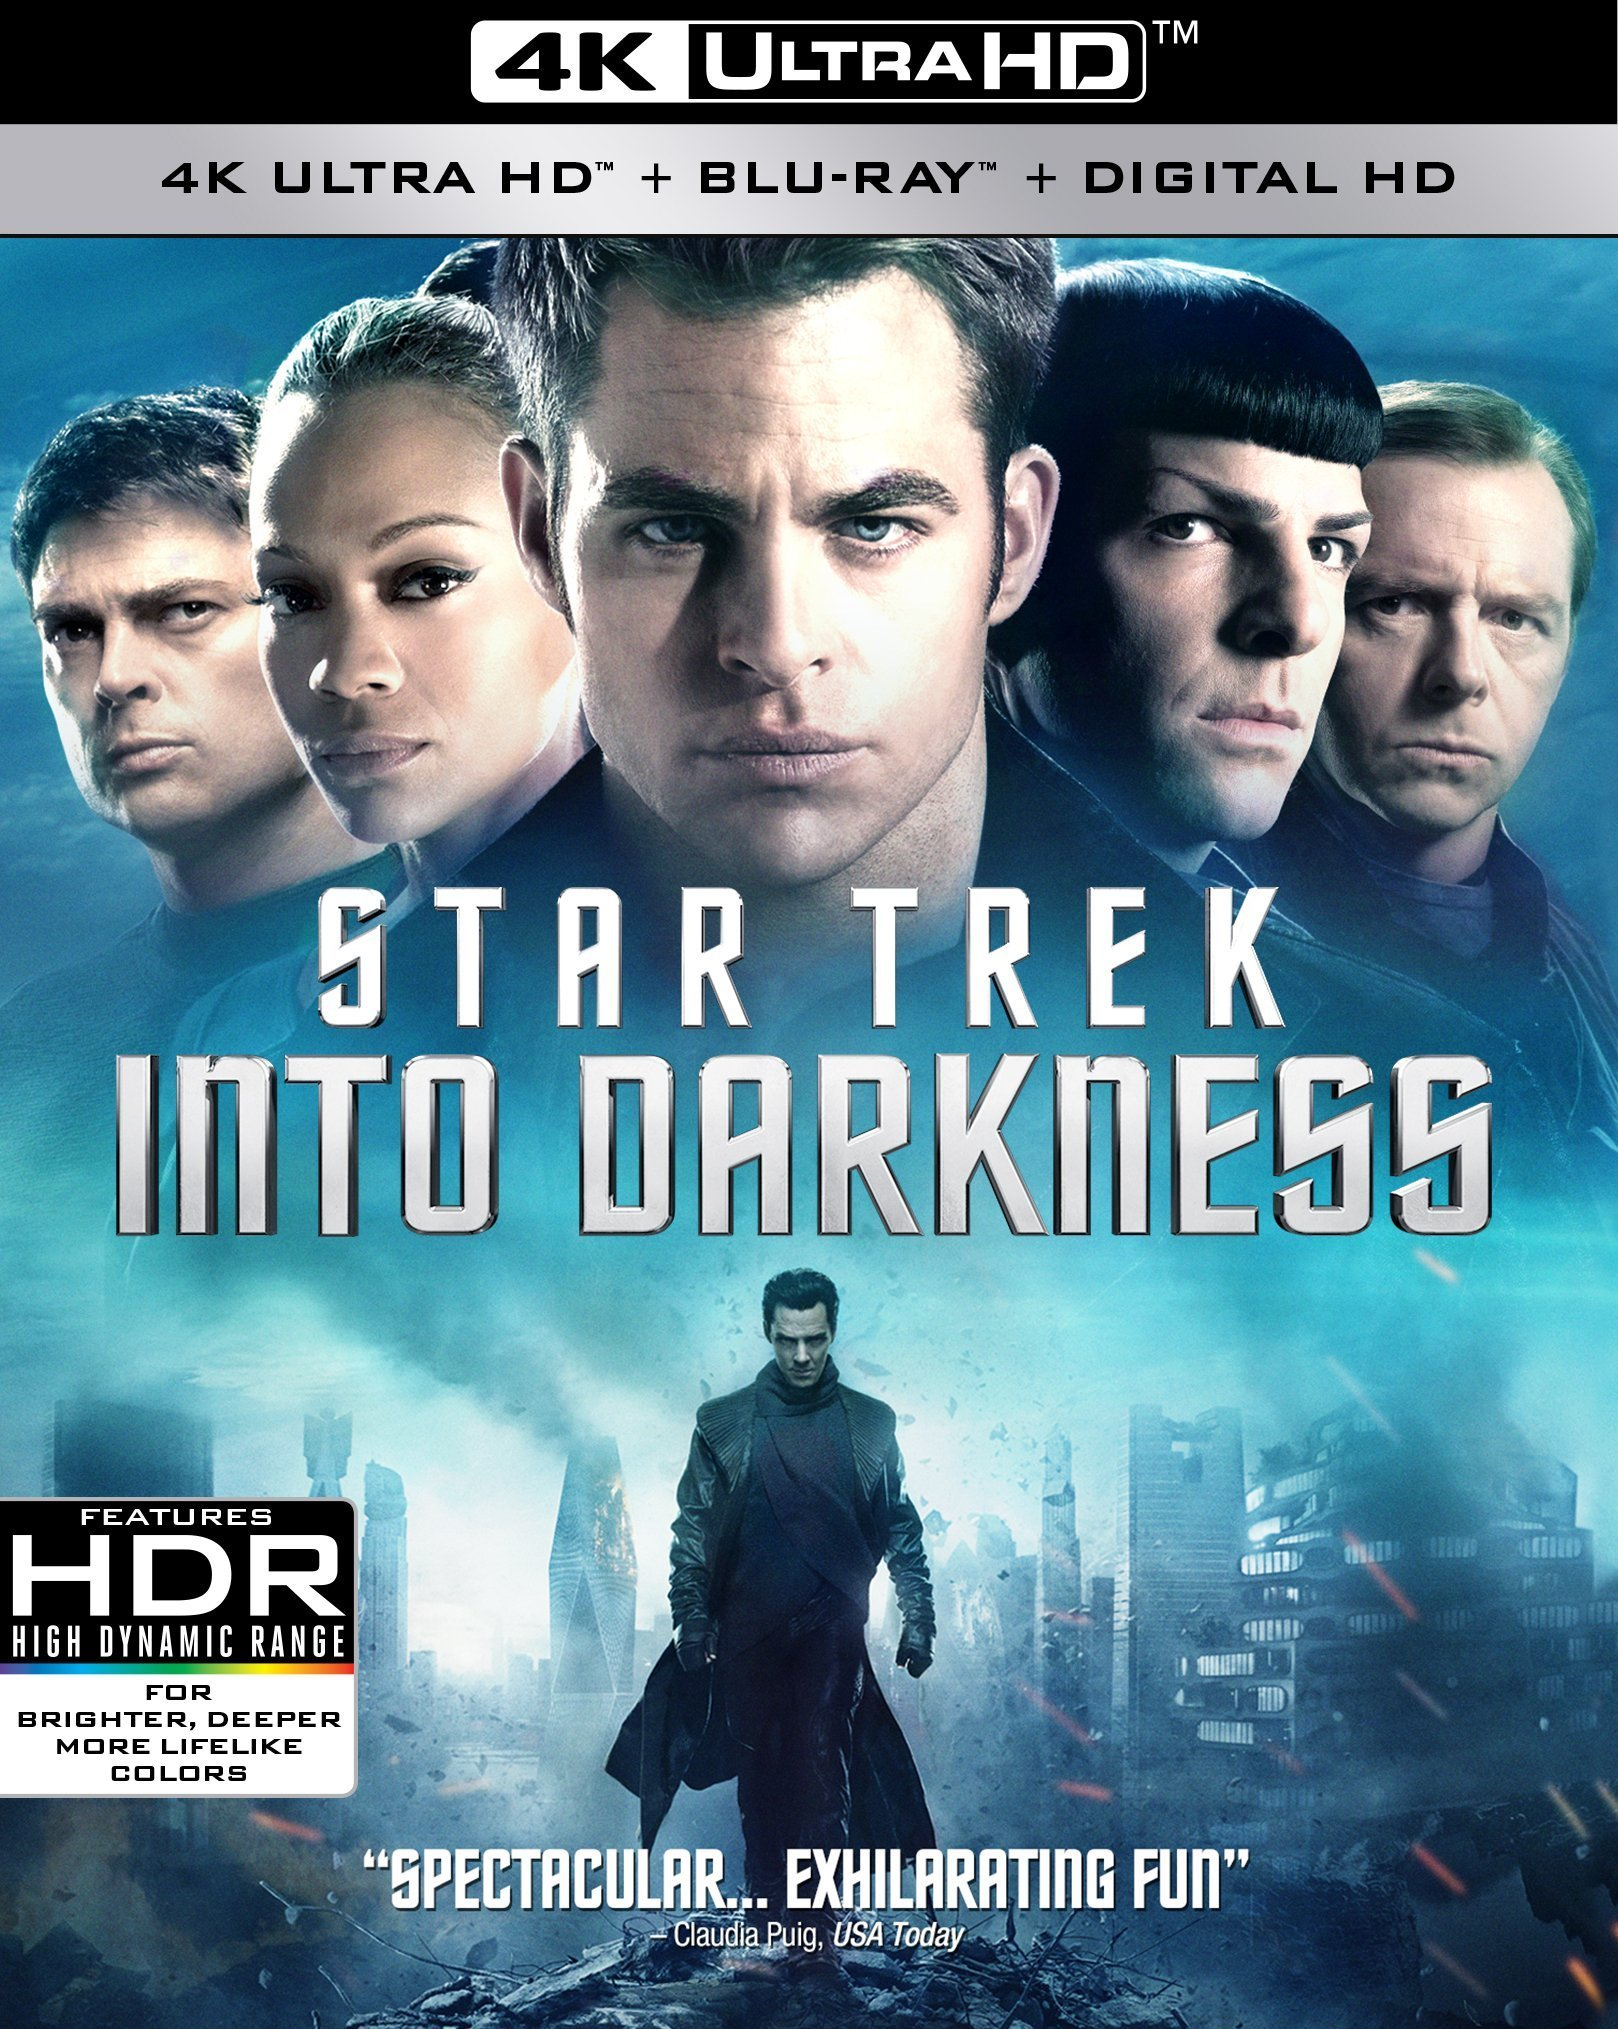 download Star.Trek.Into.Darkness.2013.German.DL.2160p.UHD.BluRay.HDR.HEVC.Remux-XYZ